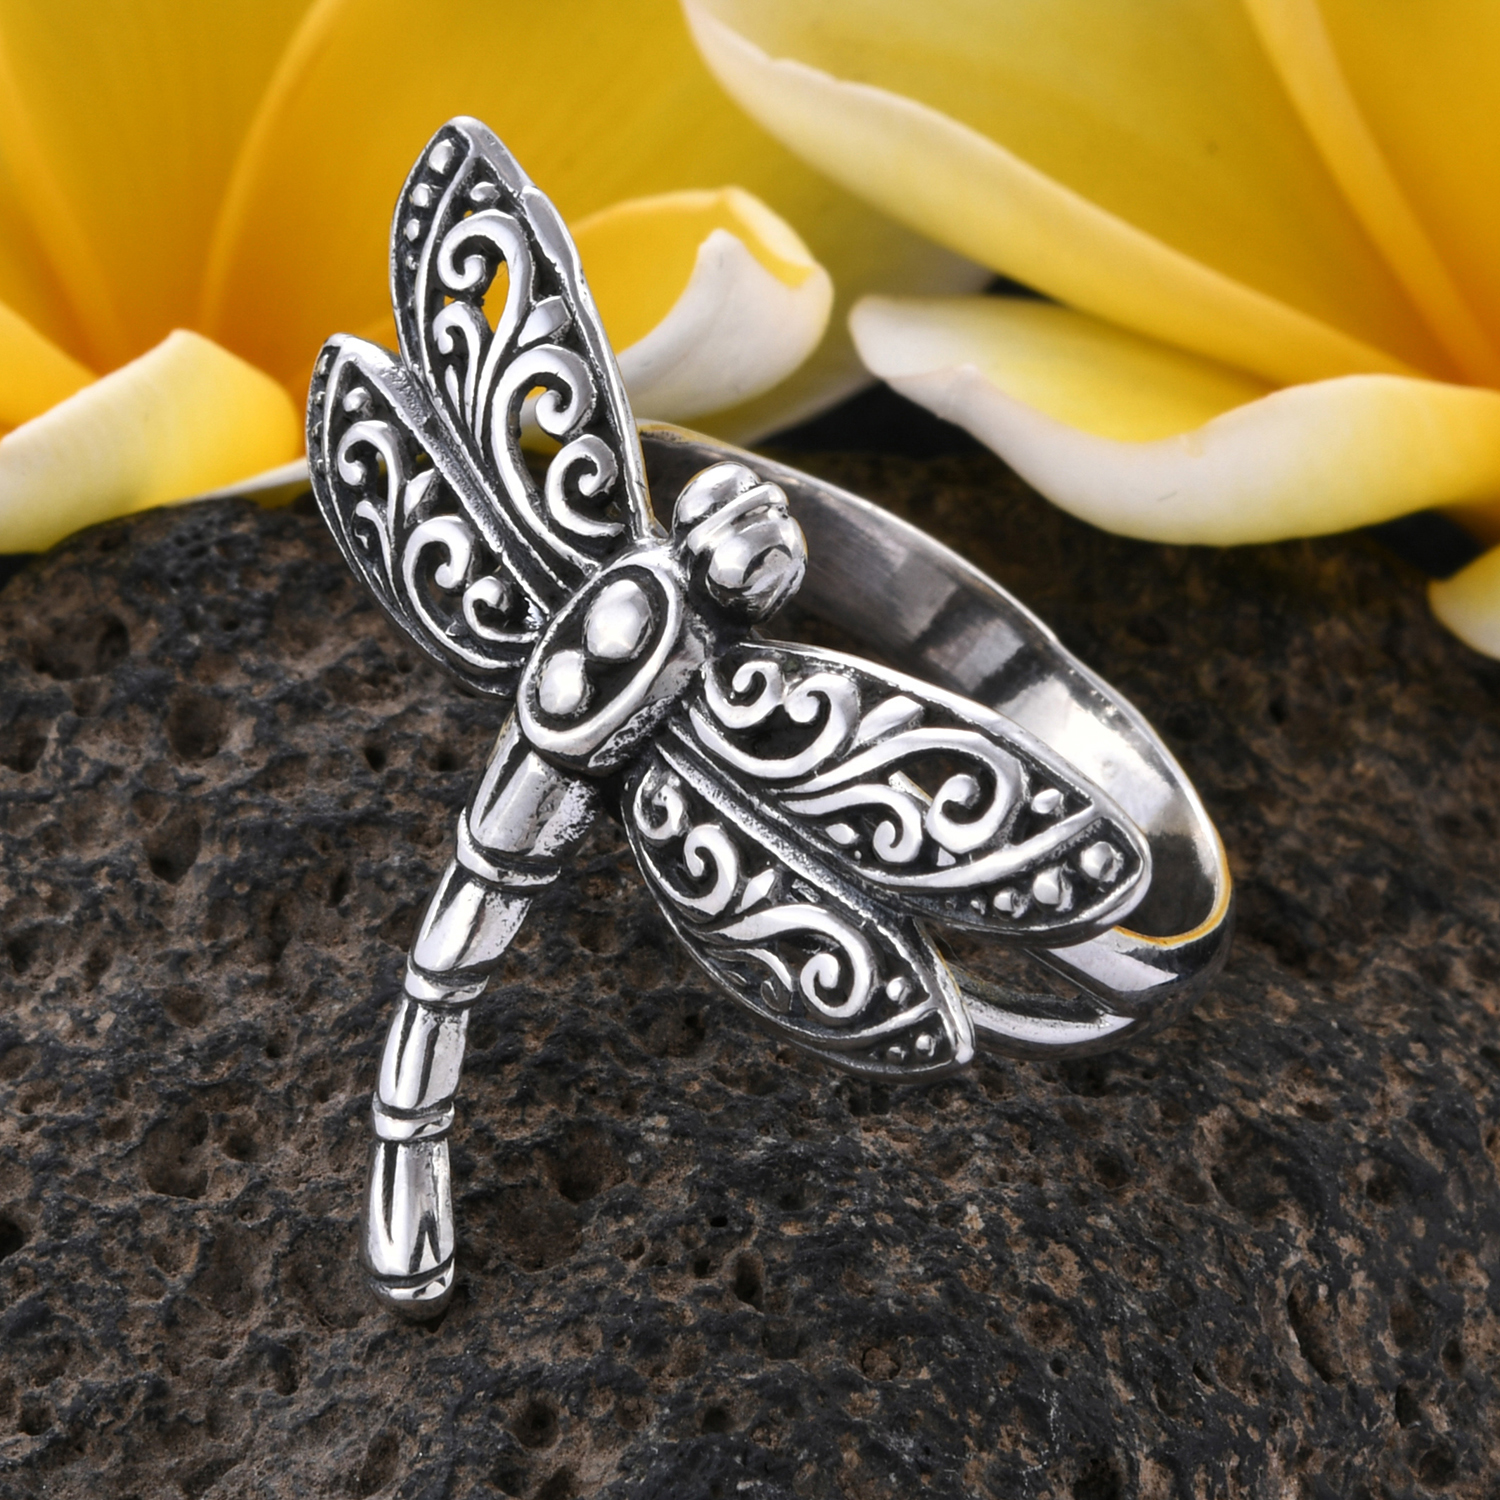 Bali crafted sterling silver dragonfly ring.